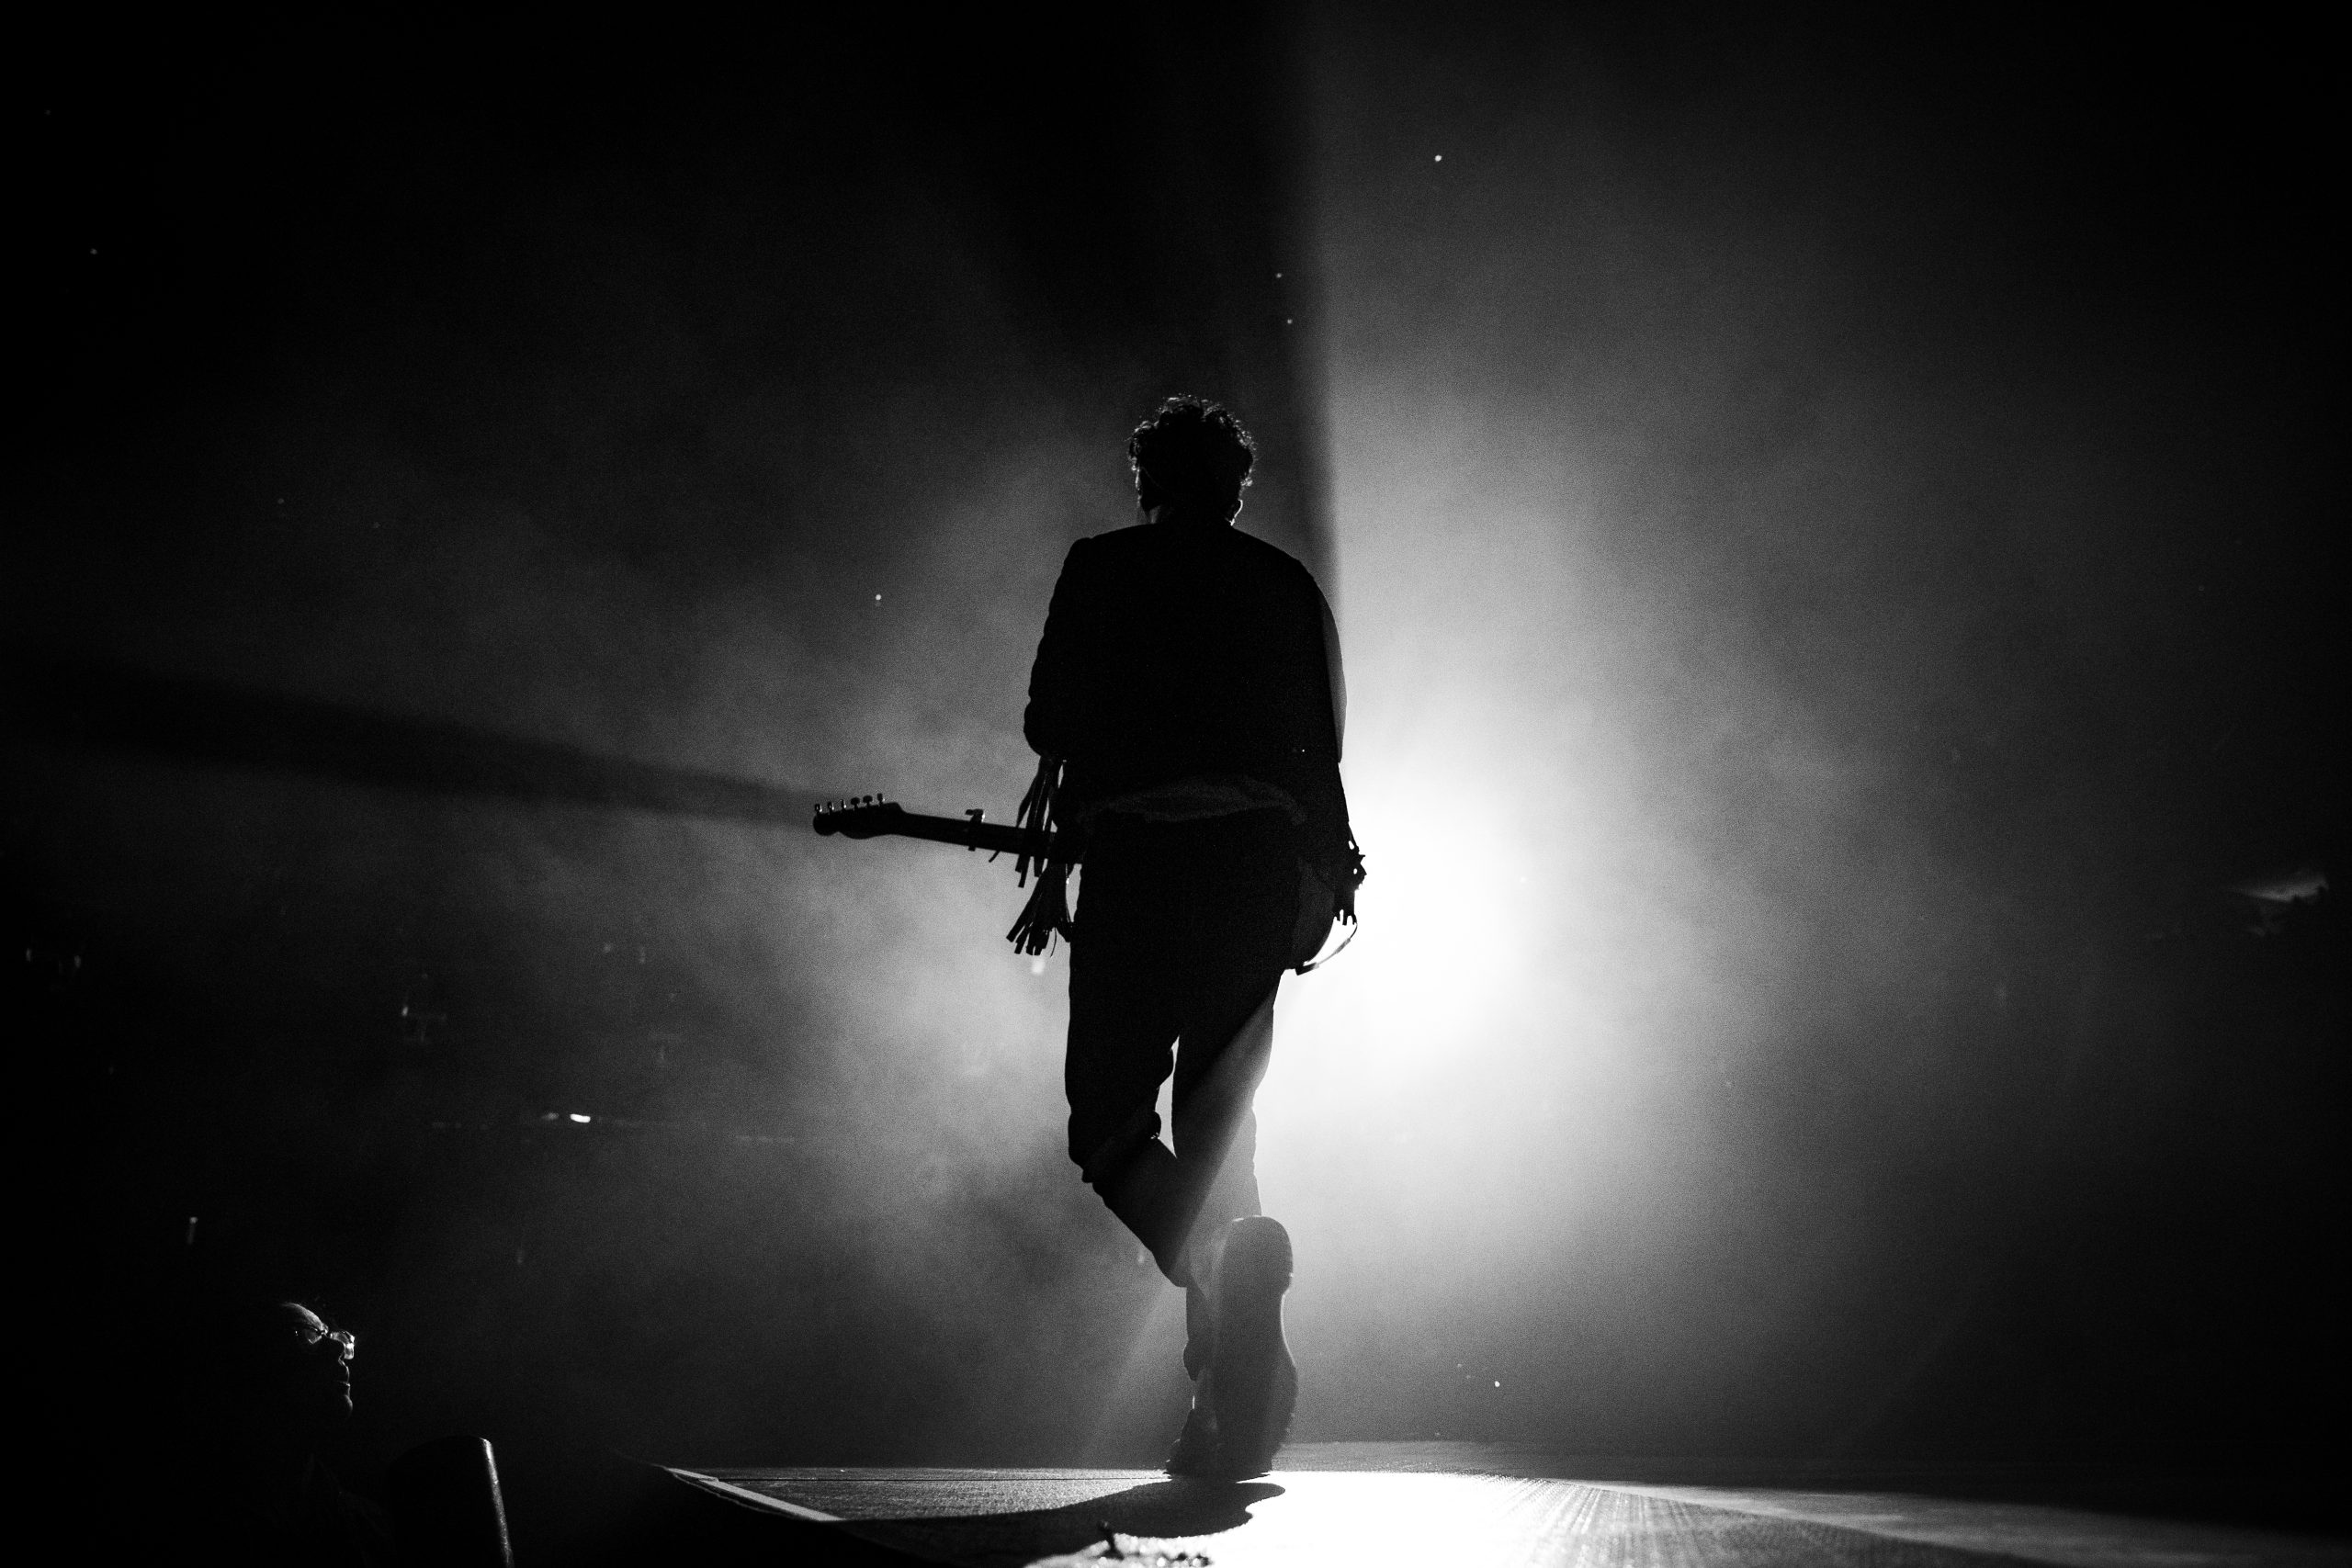 Silhouette photo of man singing on stage